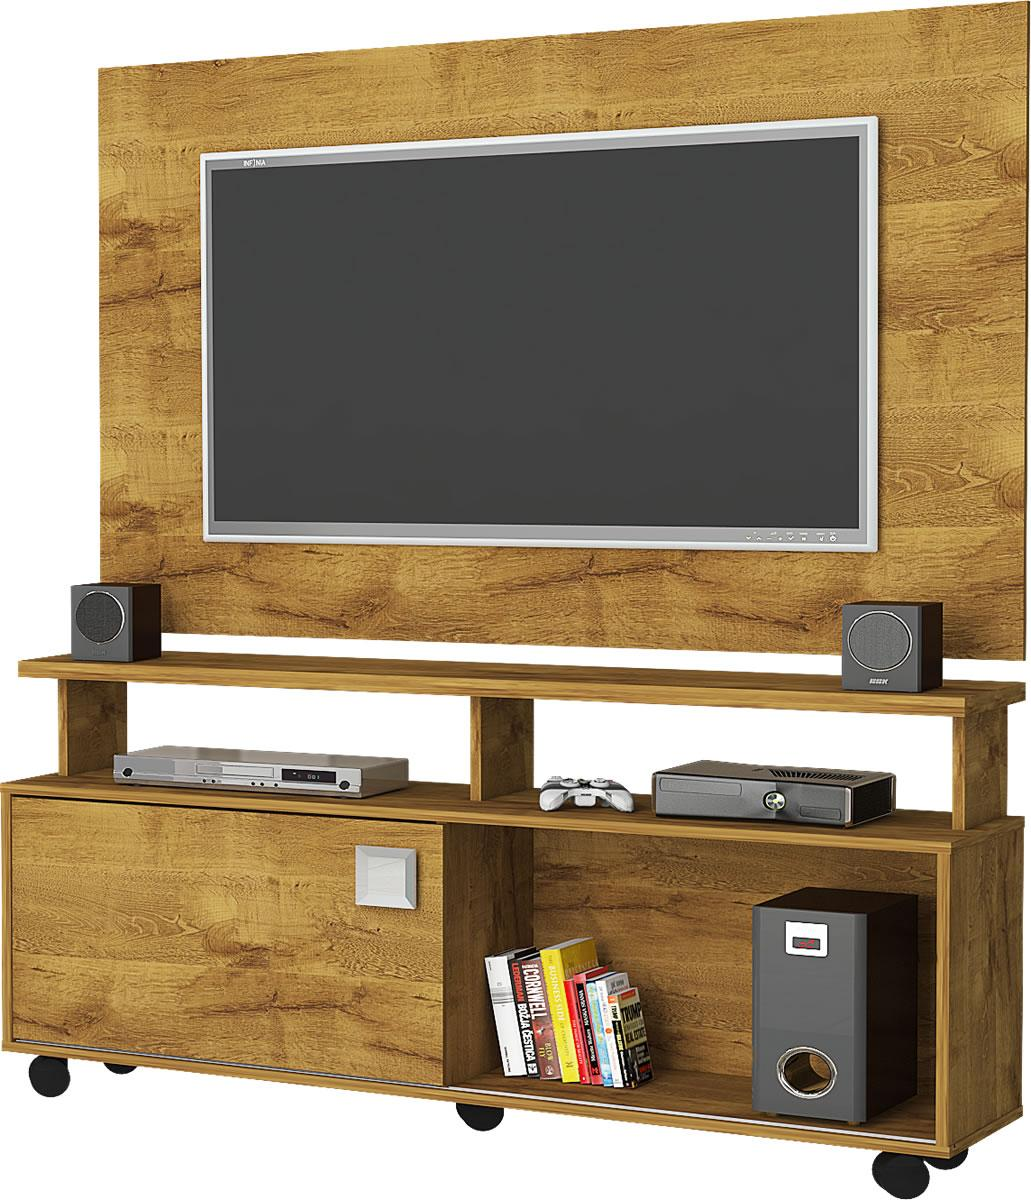 Estante Home Theater Sena Mel - Permobili